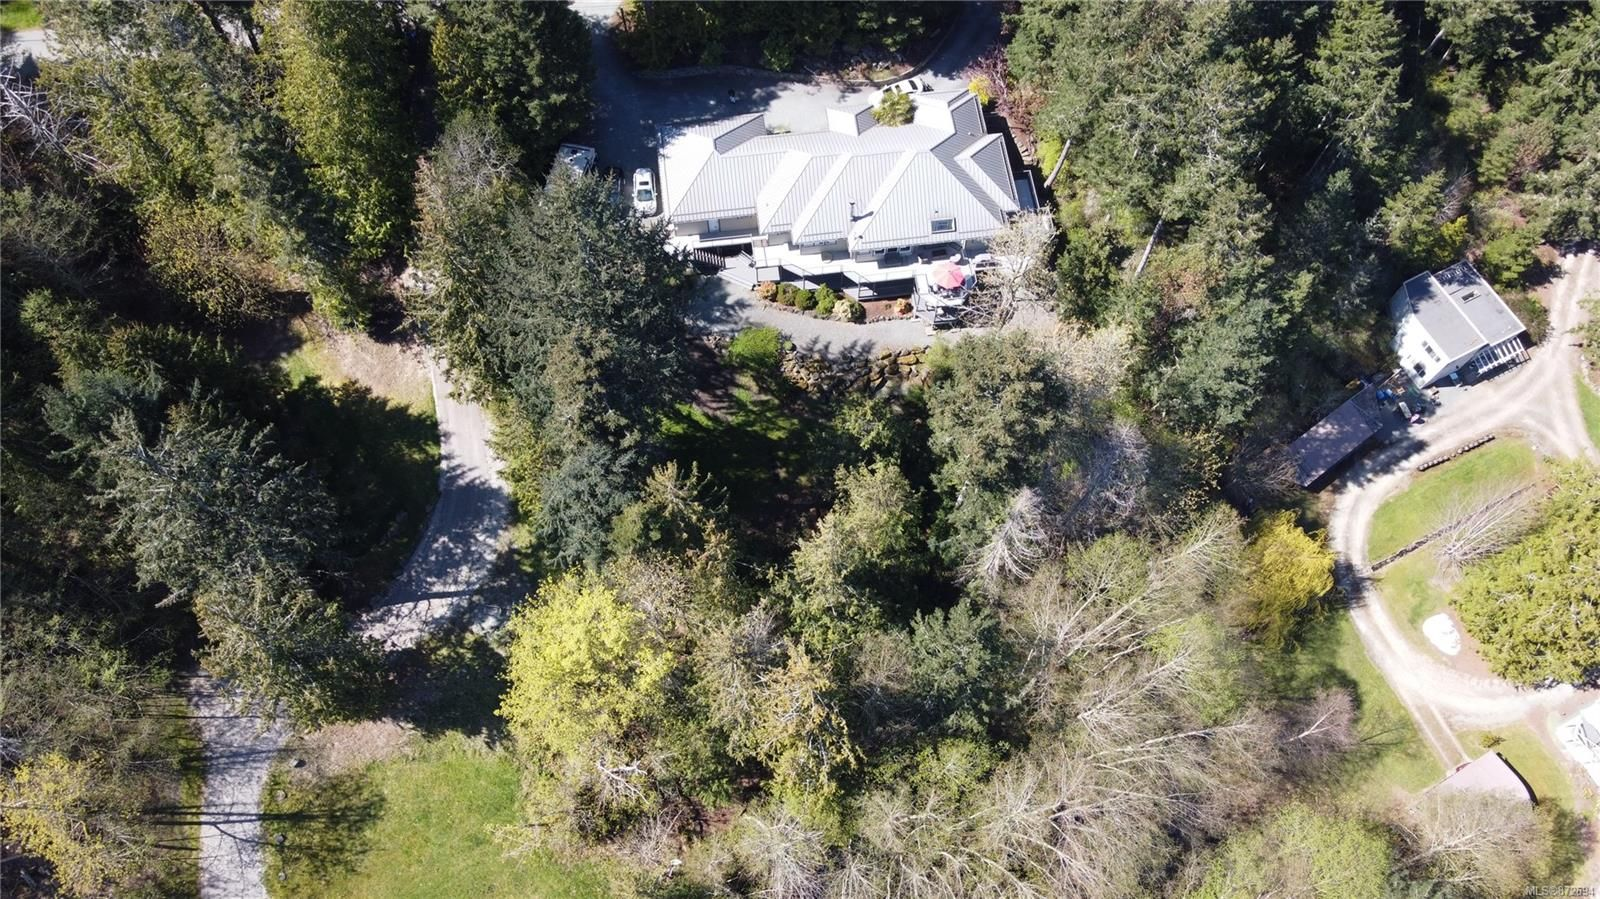 Main Photo: 11221 Hedgerow Dr in : NS Lands End House for sale (North Saanich)  : MLS®# 872694